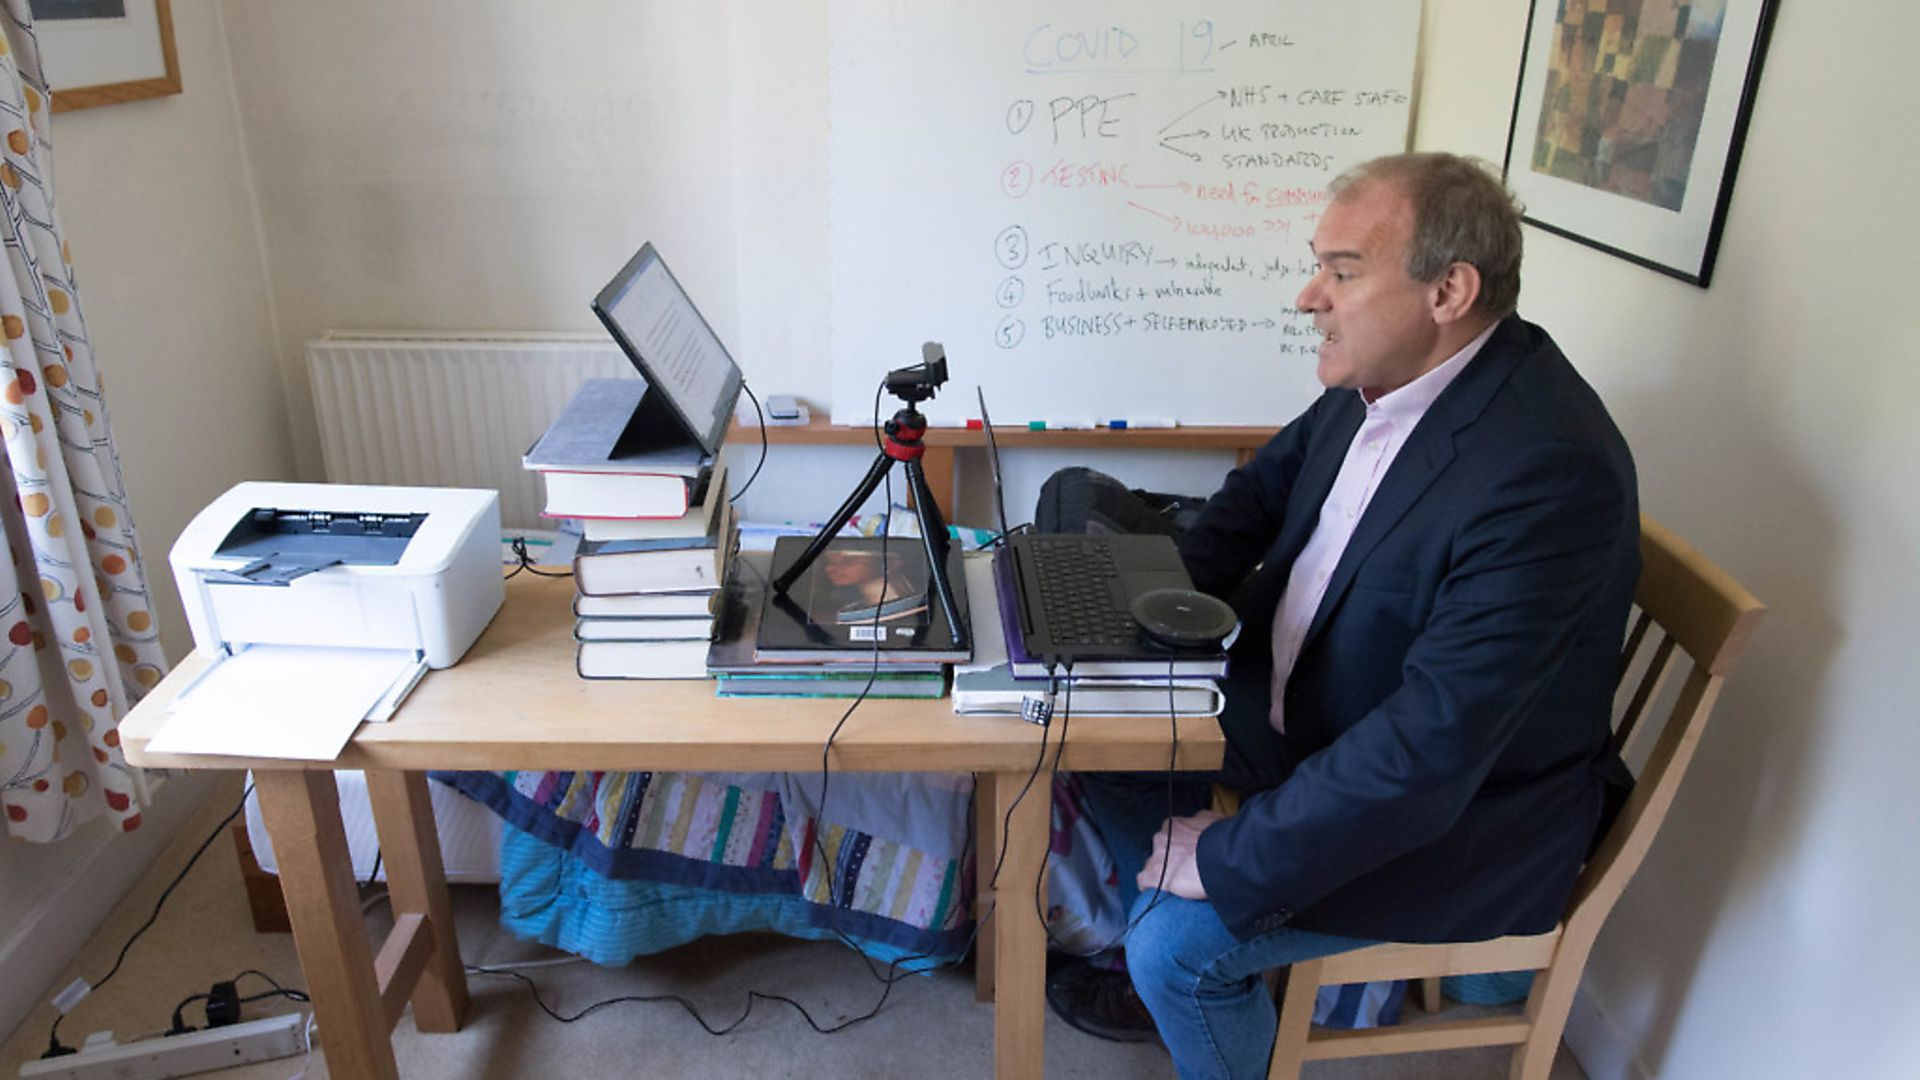 Liberal Democrat acting leader Sir Ed Davey takes part in the first virtual Prime Minister's Questions from his home in Surbiton, south London. Picture: PA - Credit: PA